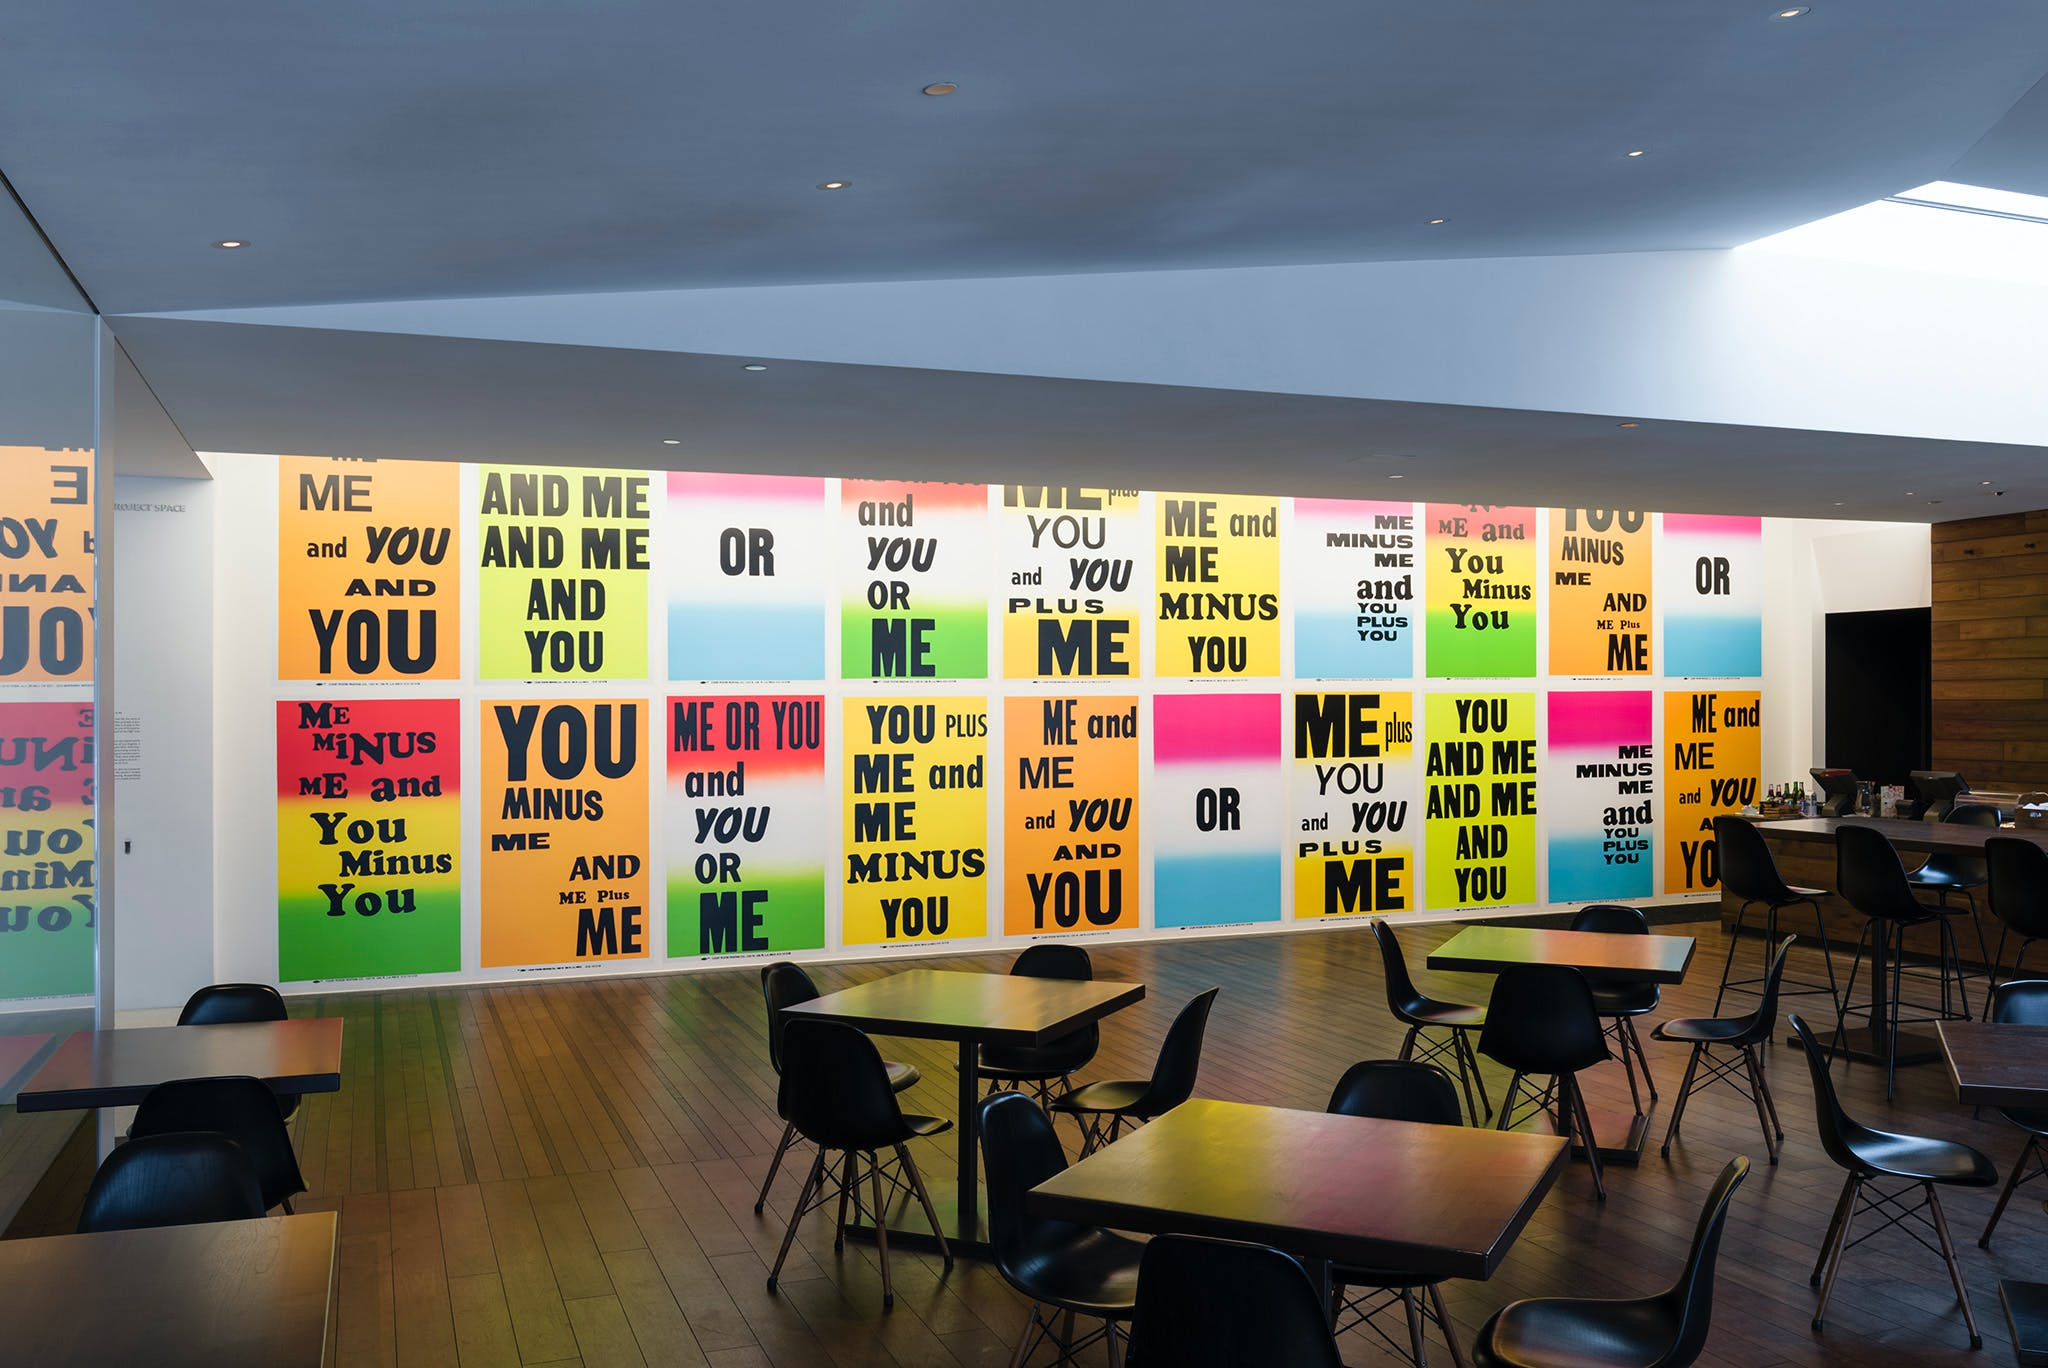 Allen Ruppersberg, You & Me, 2013, installed in the Walker's Target Project space in Esker Grove. Photo: Galen Fletcher for Walker Art Center